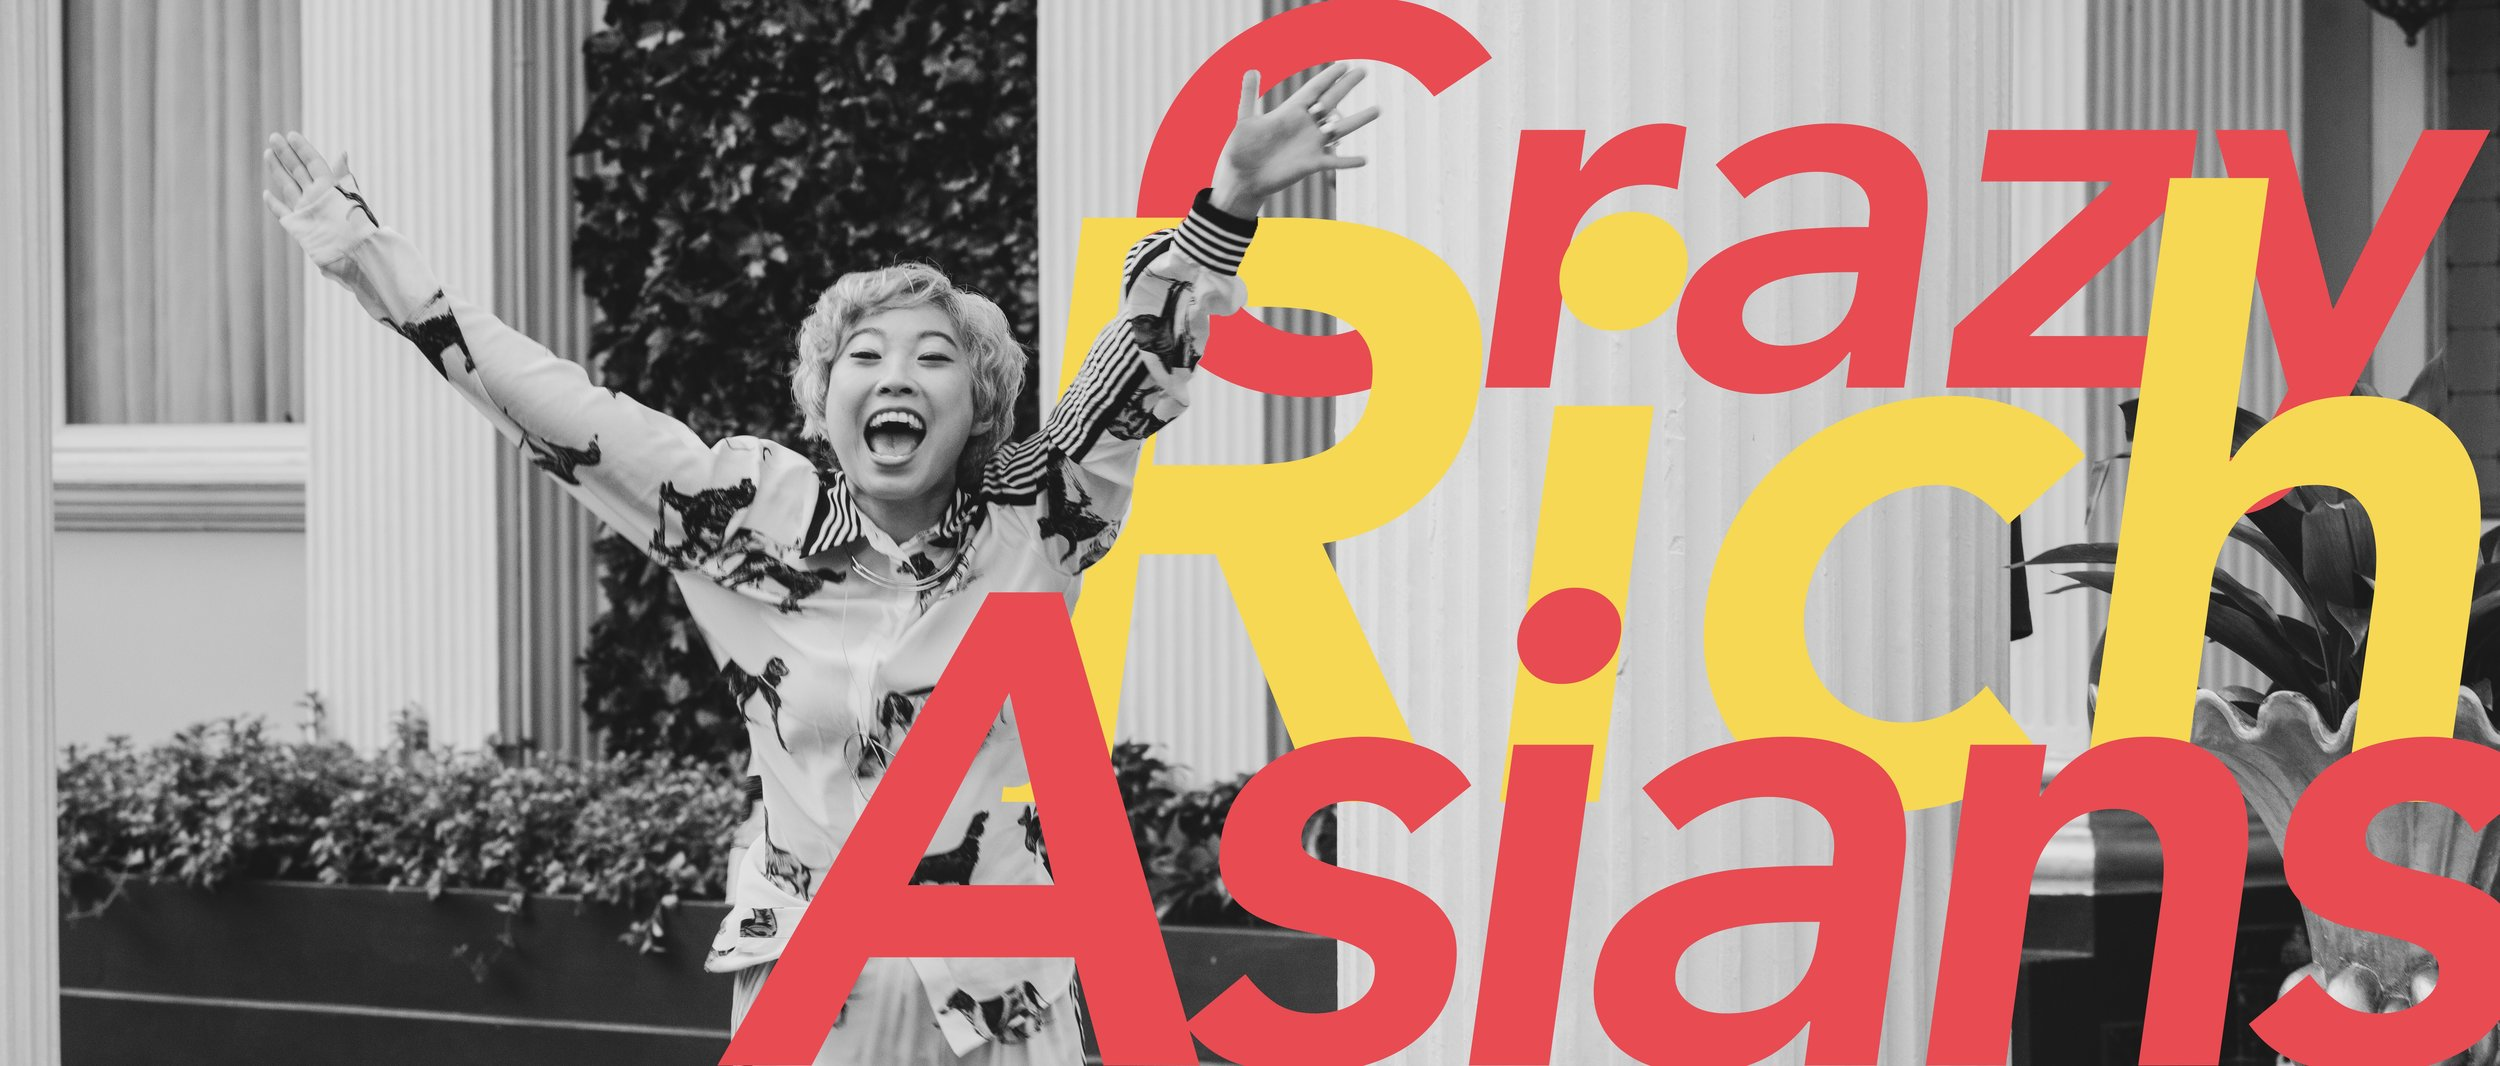 Crazy Rich Asians starring Awkwafina